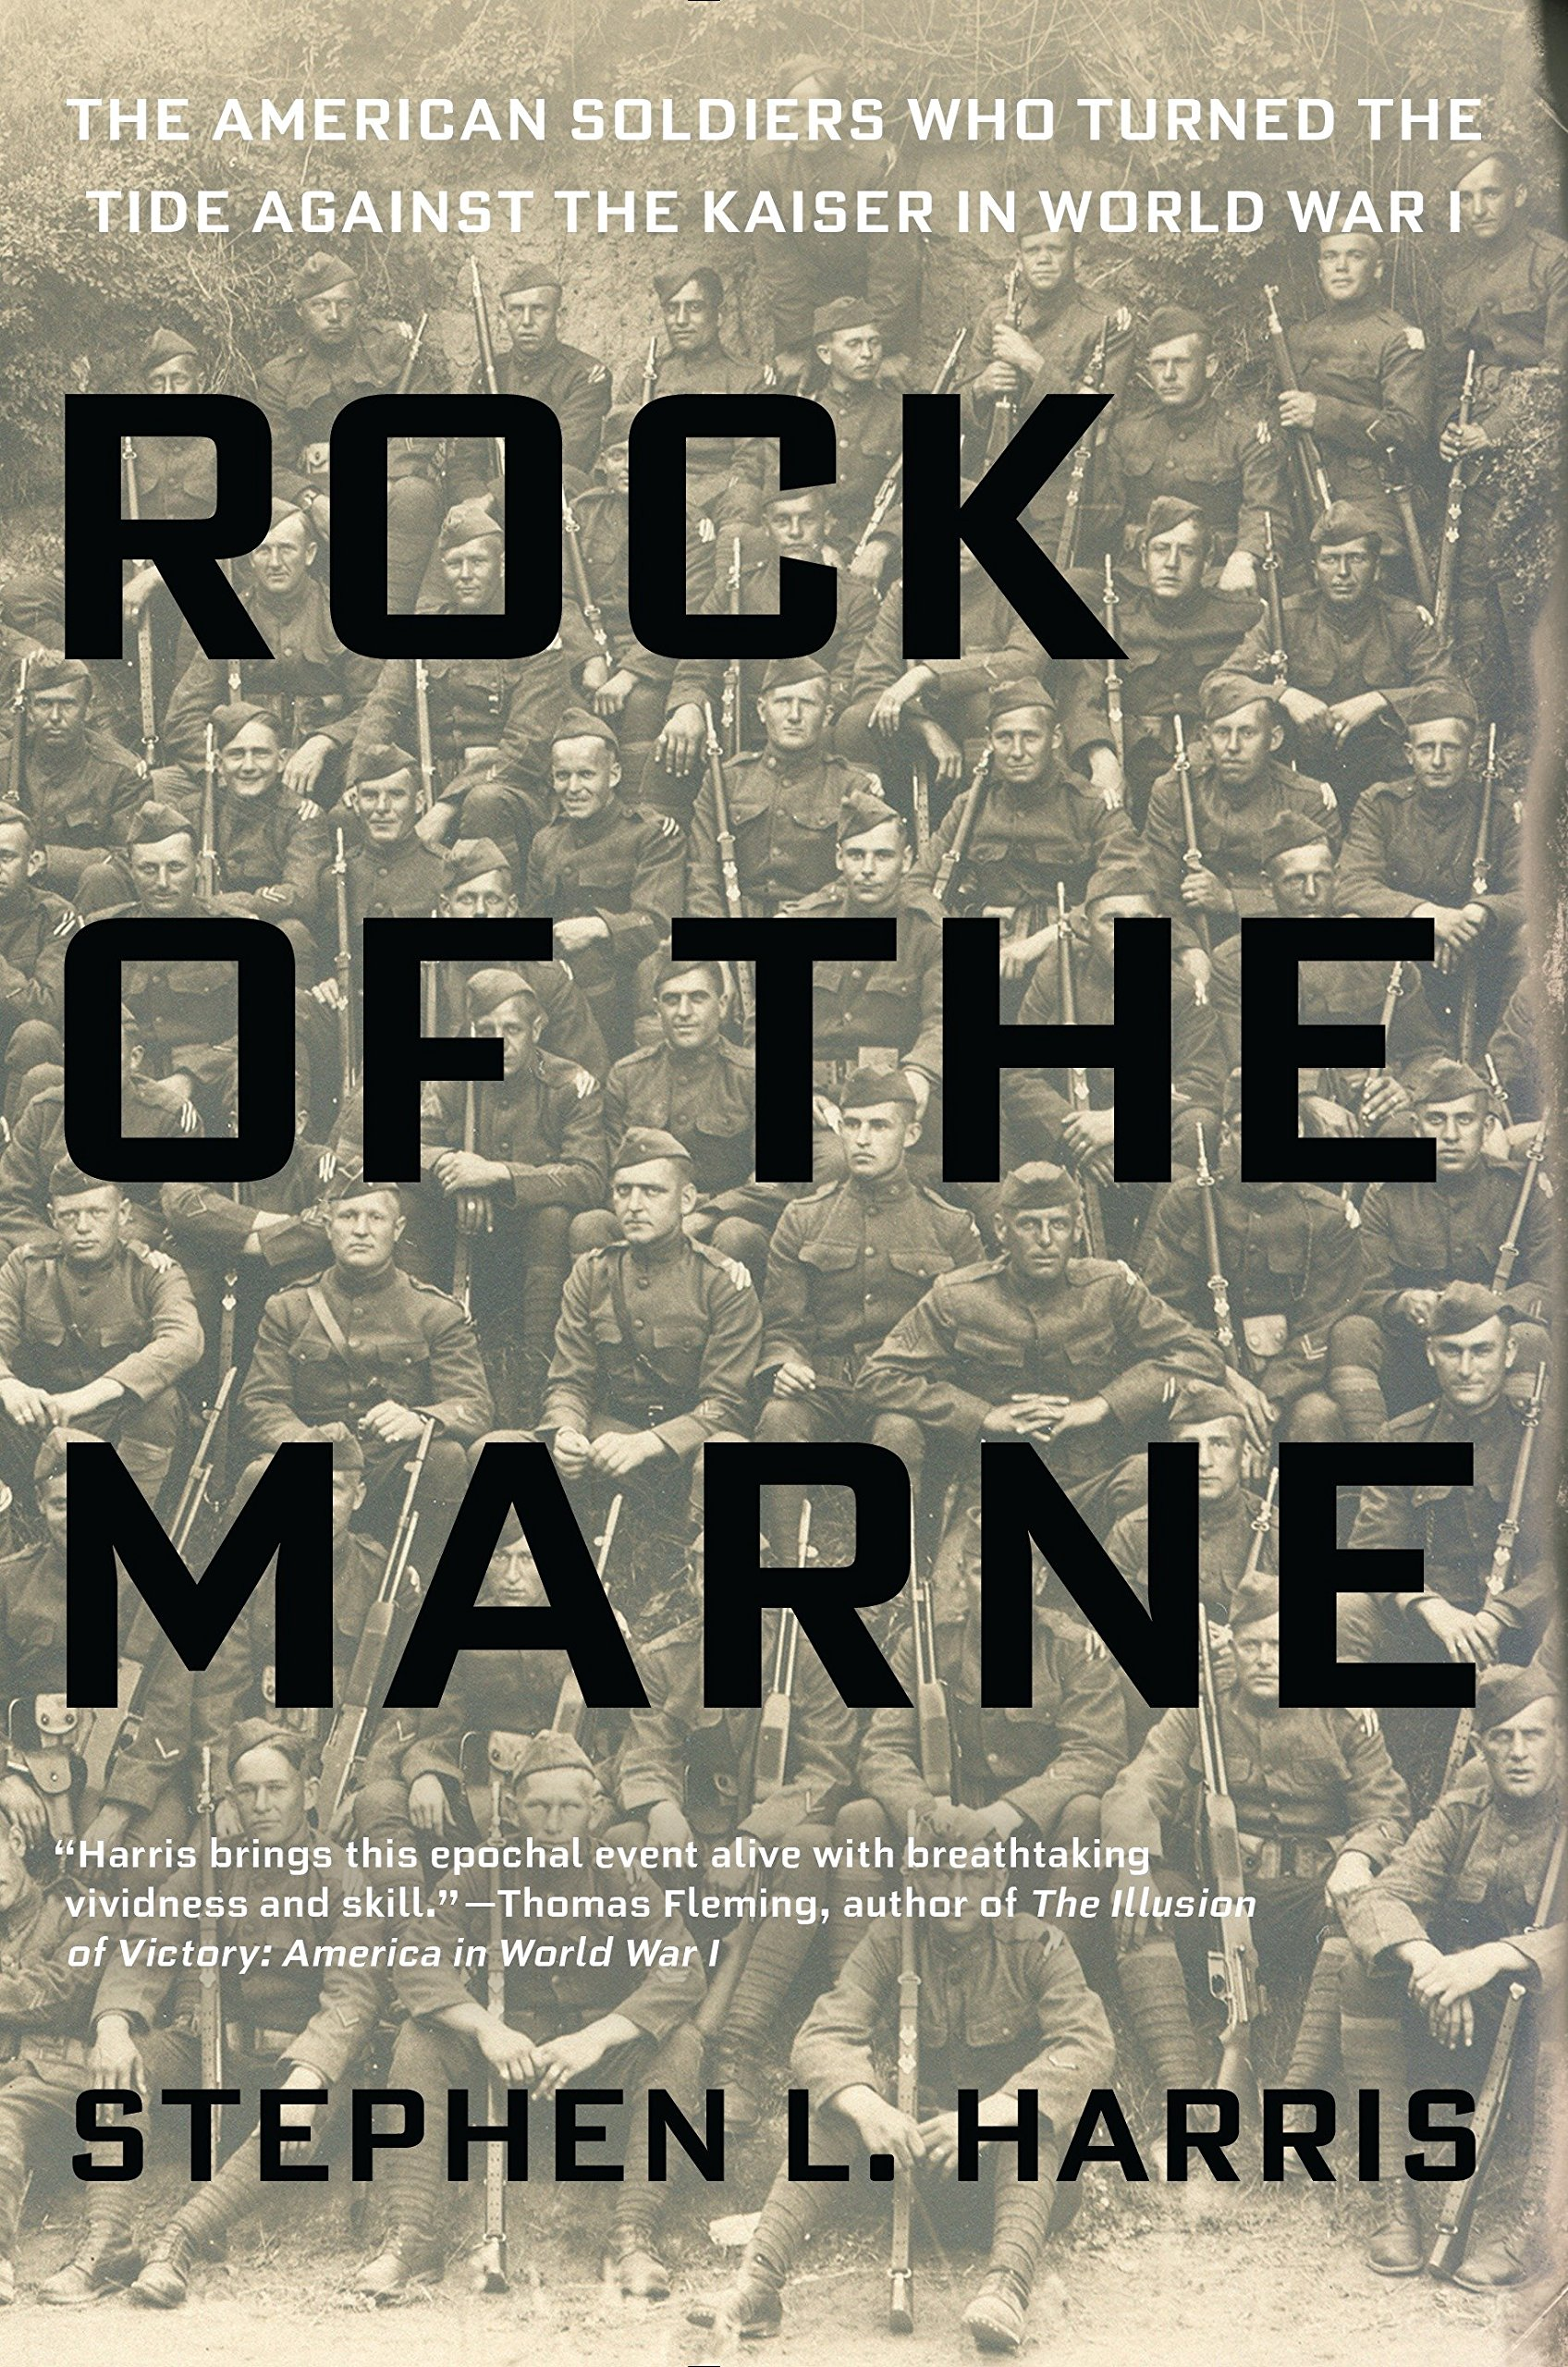 Amazon fr - Rock of the Marne: The American Soldiers Who